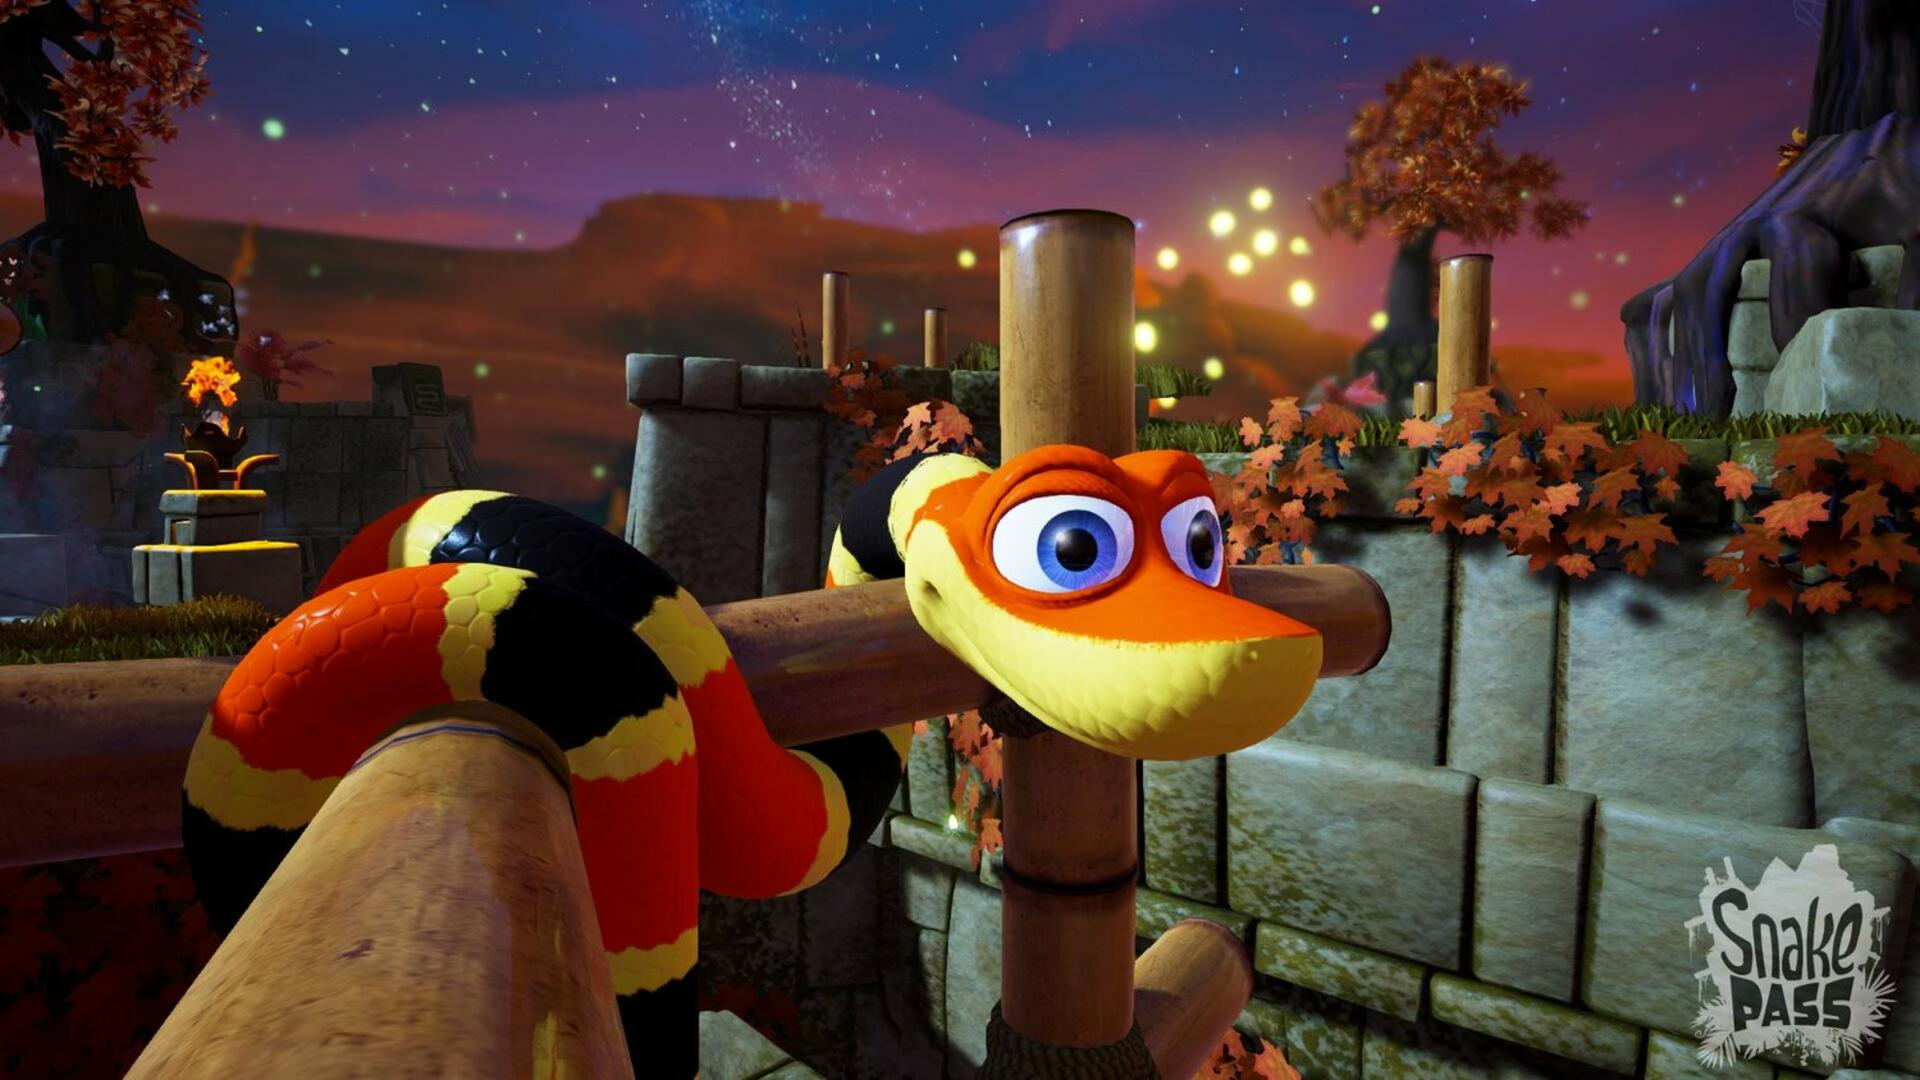 Nintendo Switch Snake Pass has Confounding Controls, but is Still Really Fun